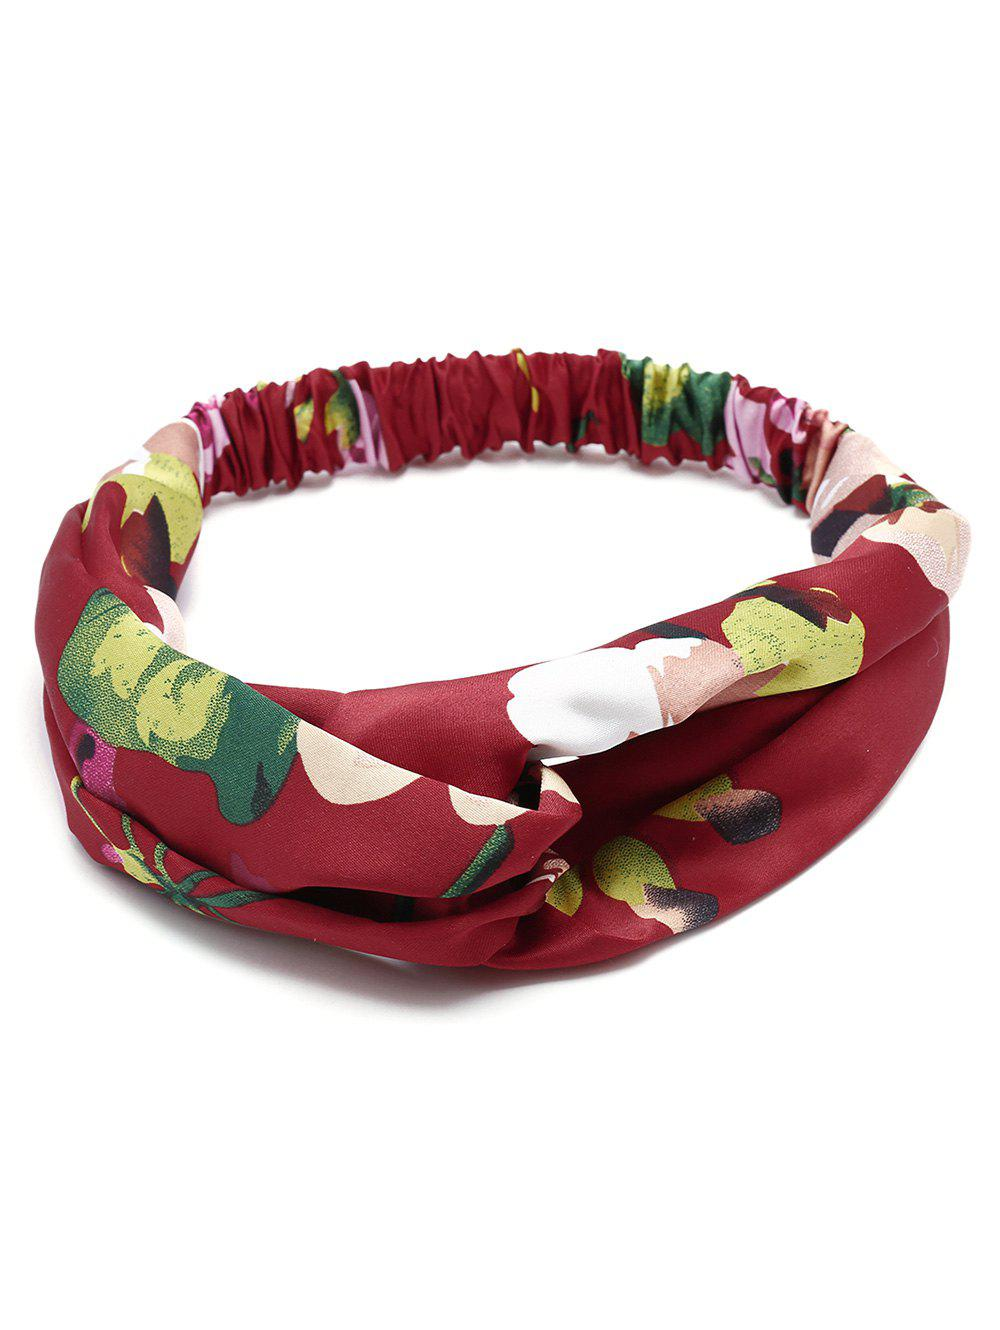 Flower Printed Multi Use Elastic Hair Band - WINE RED